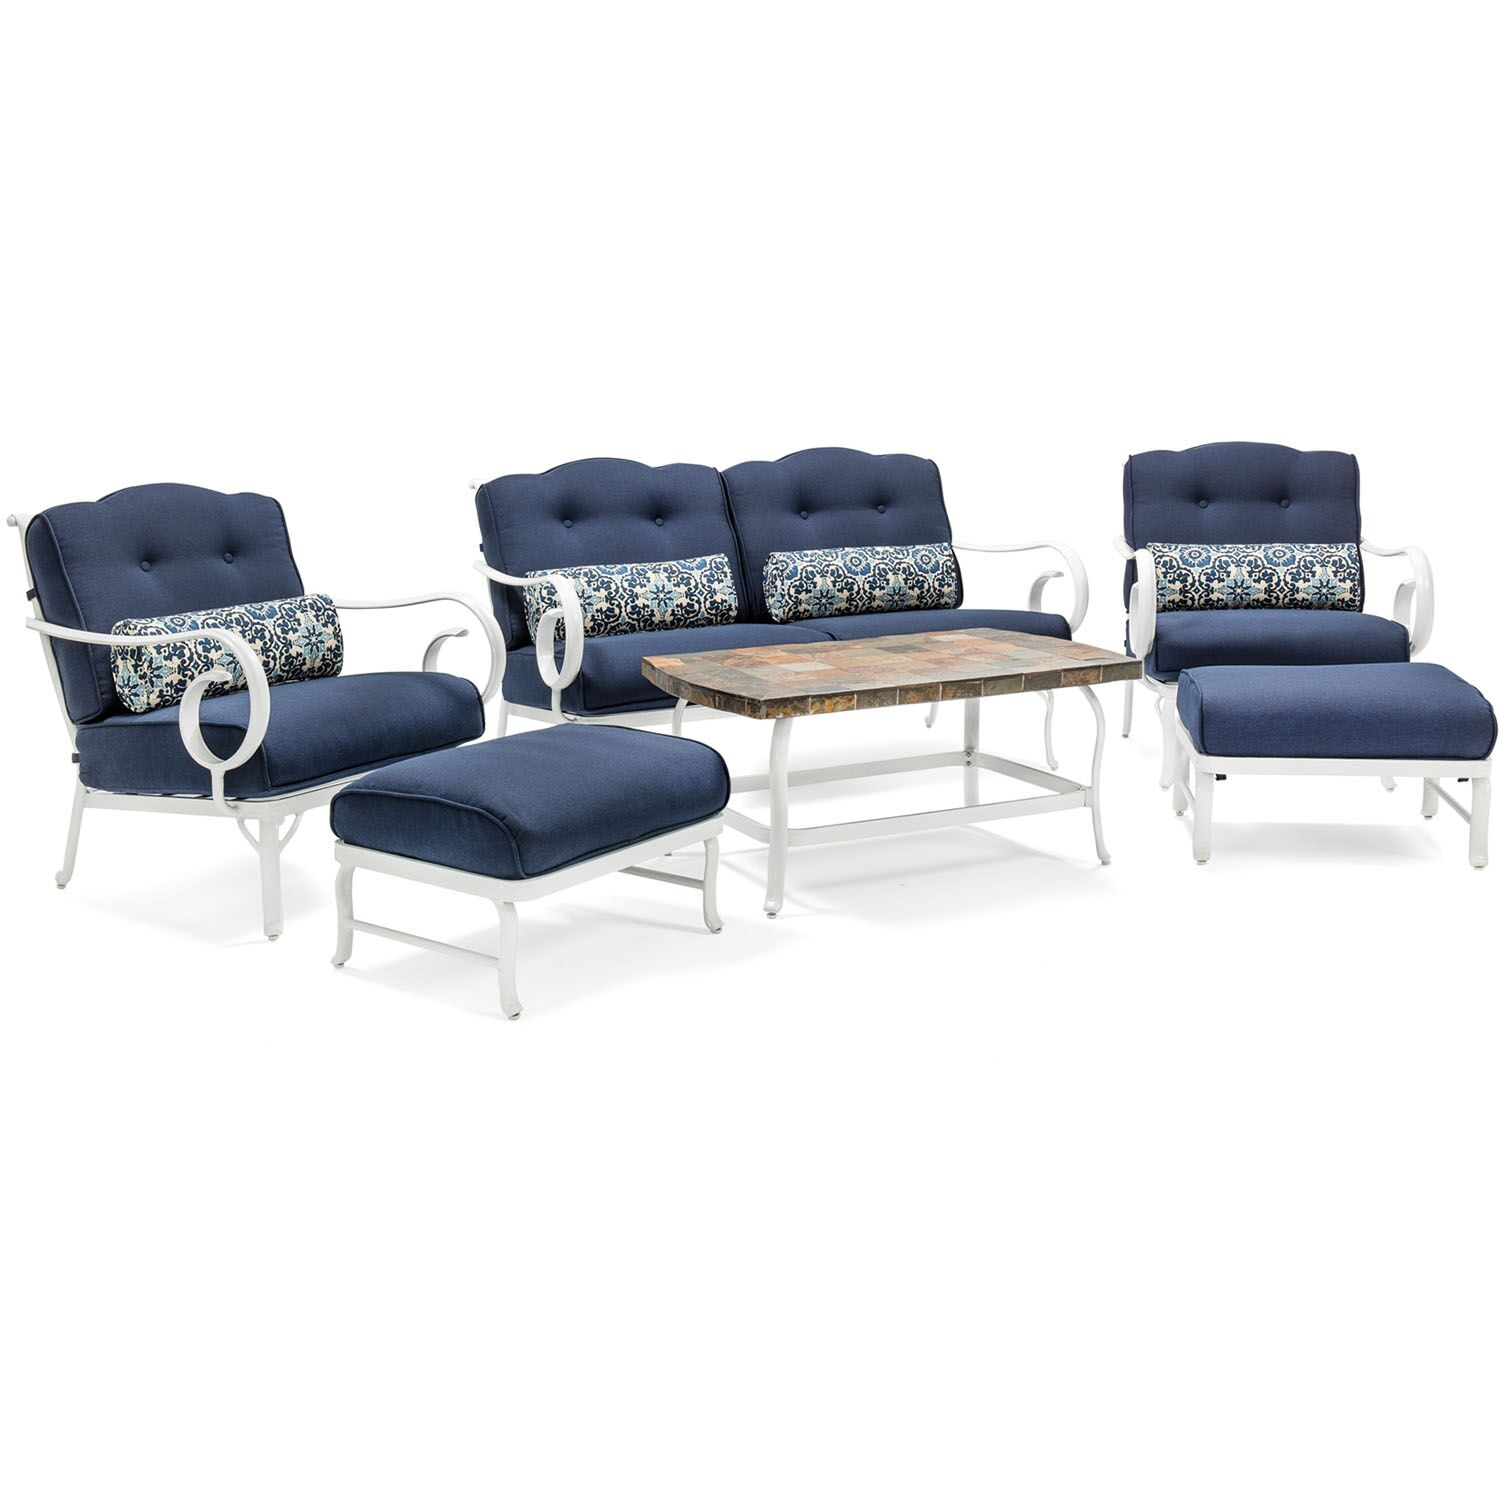 Galante 10 Piece Sofa Set with Cushions Fabric: Navy